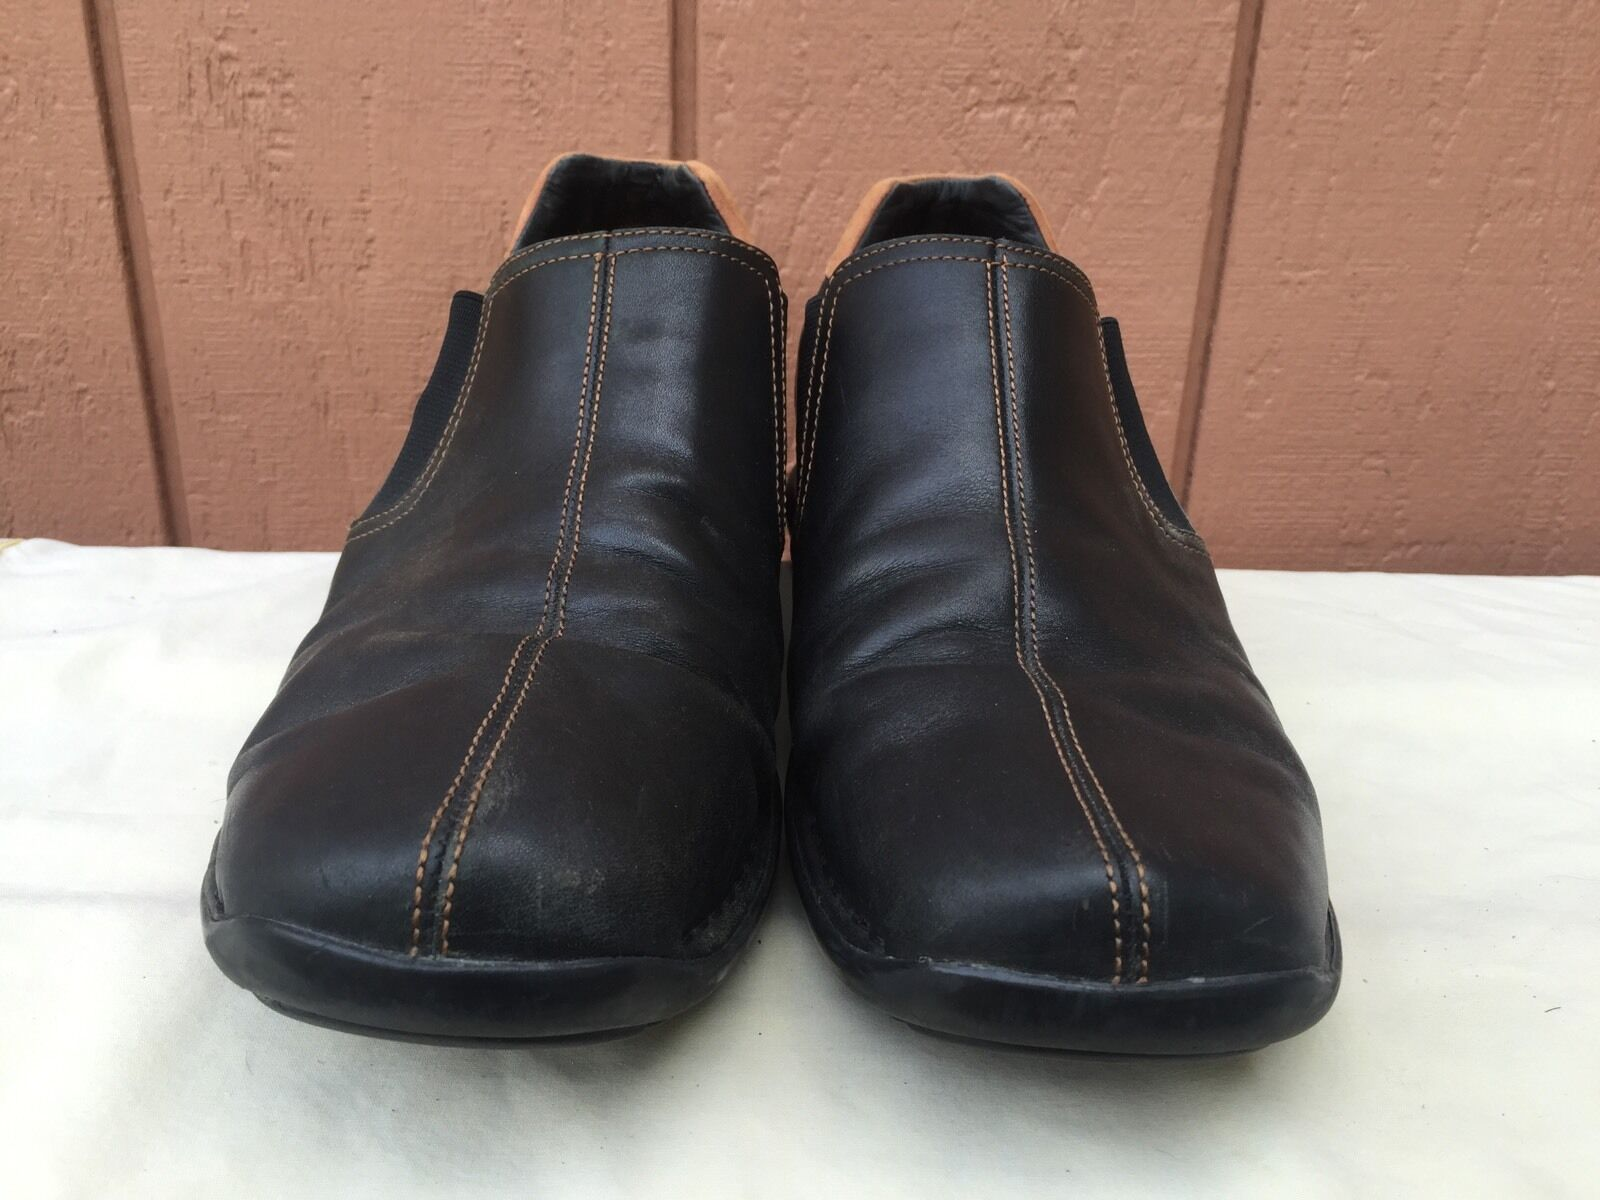 EUC Cole Haan Men's Black Leather Driving Moccasin Loafer Slip On Shoe US 9.5 W